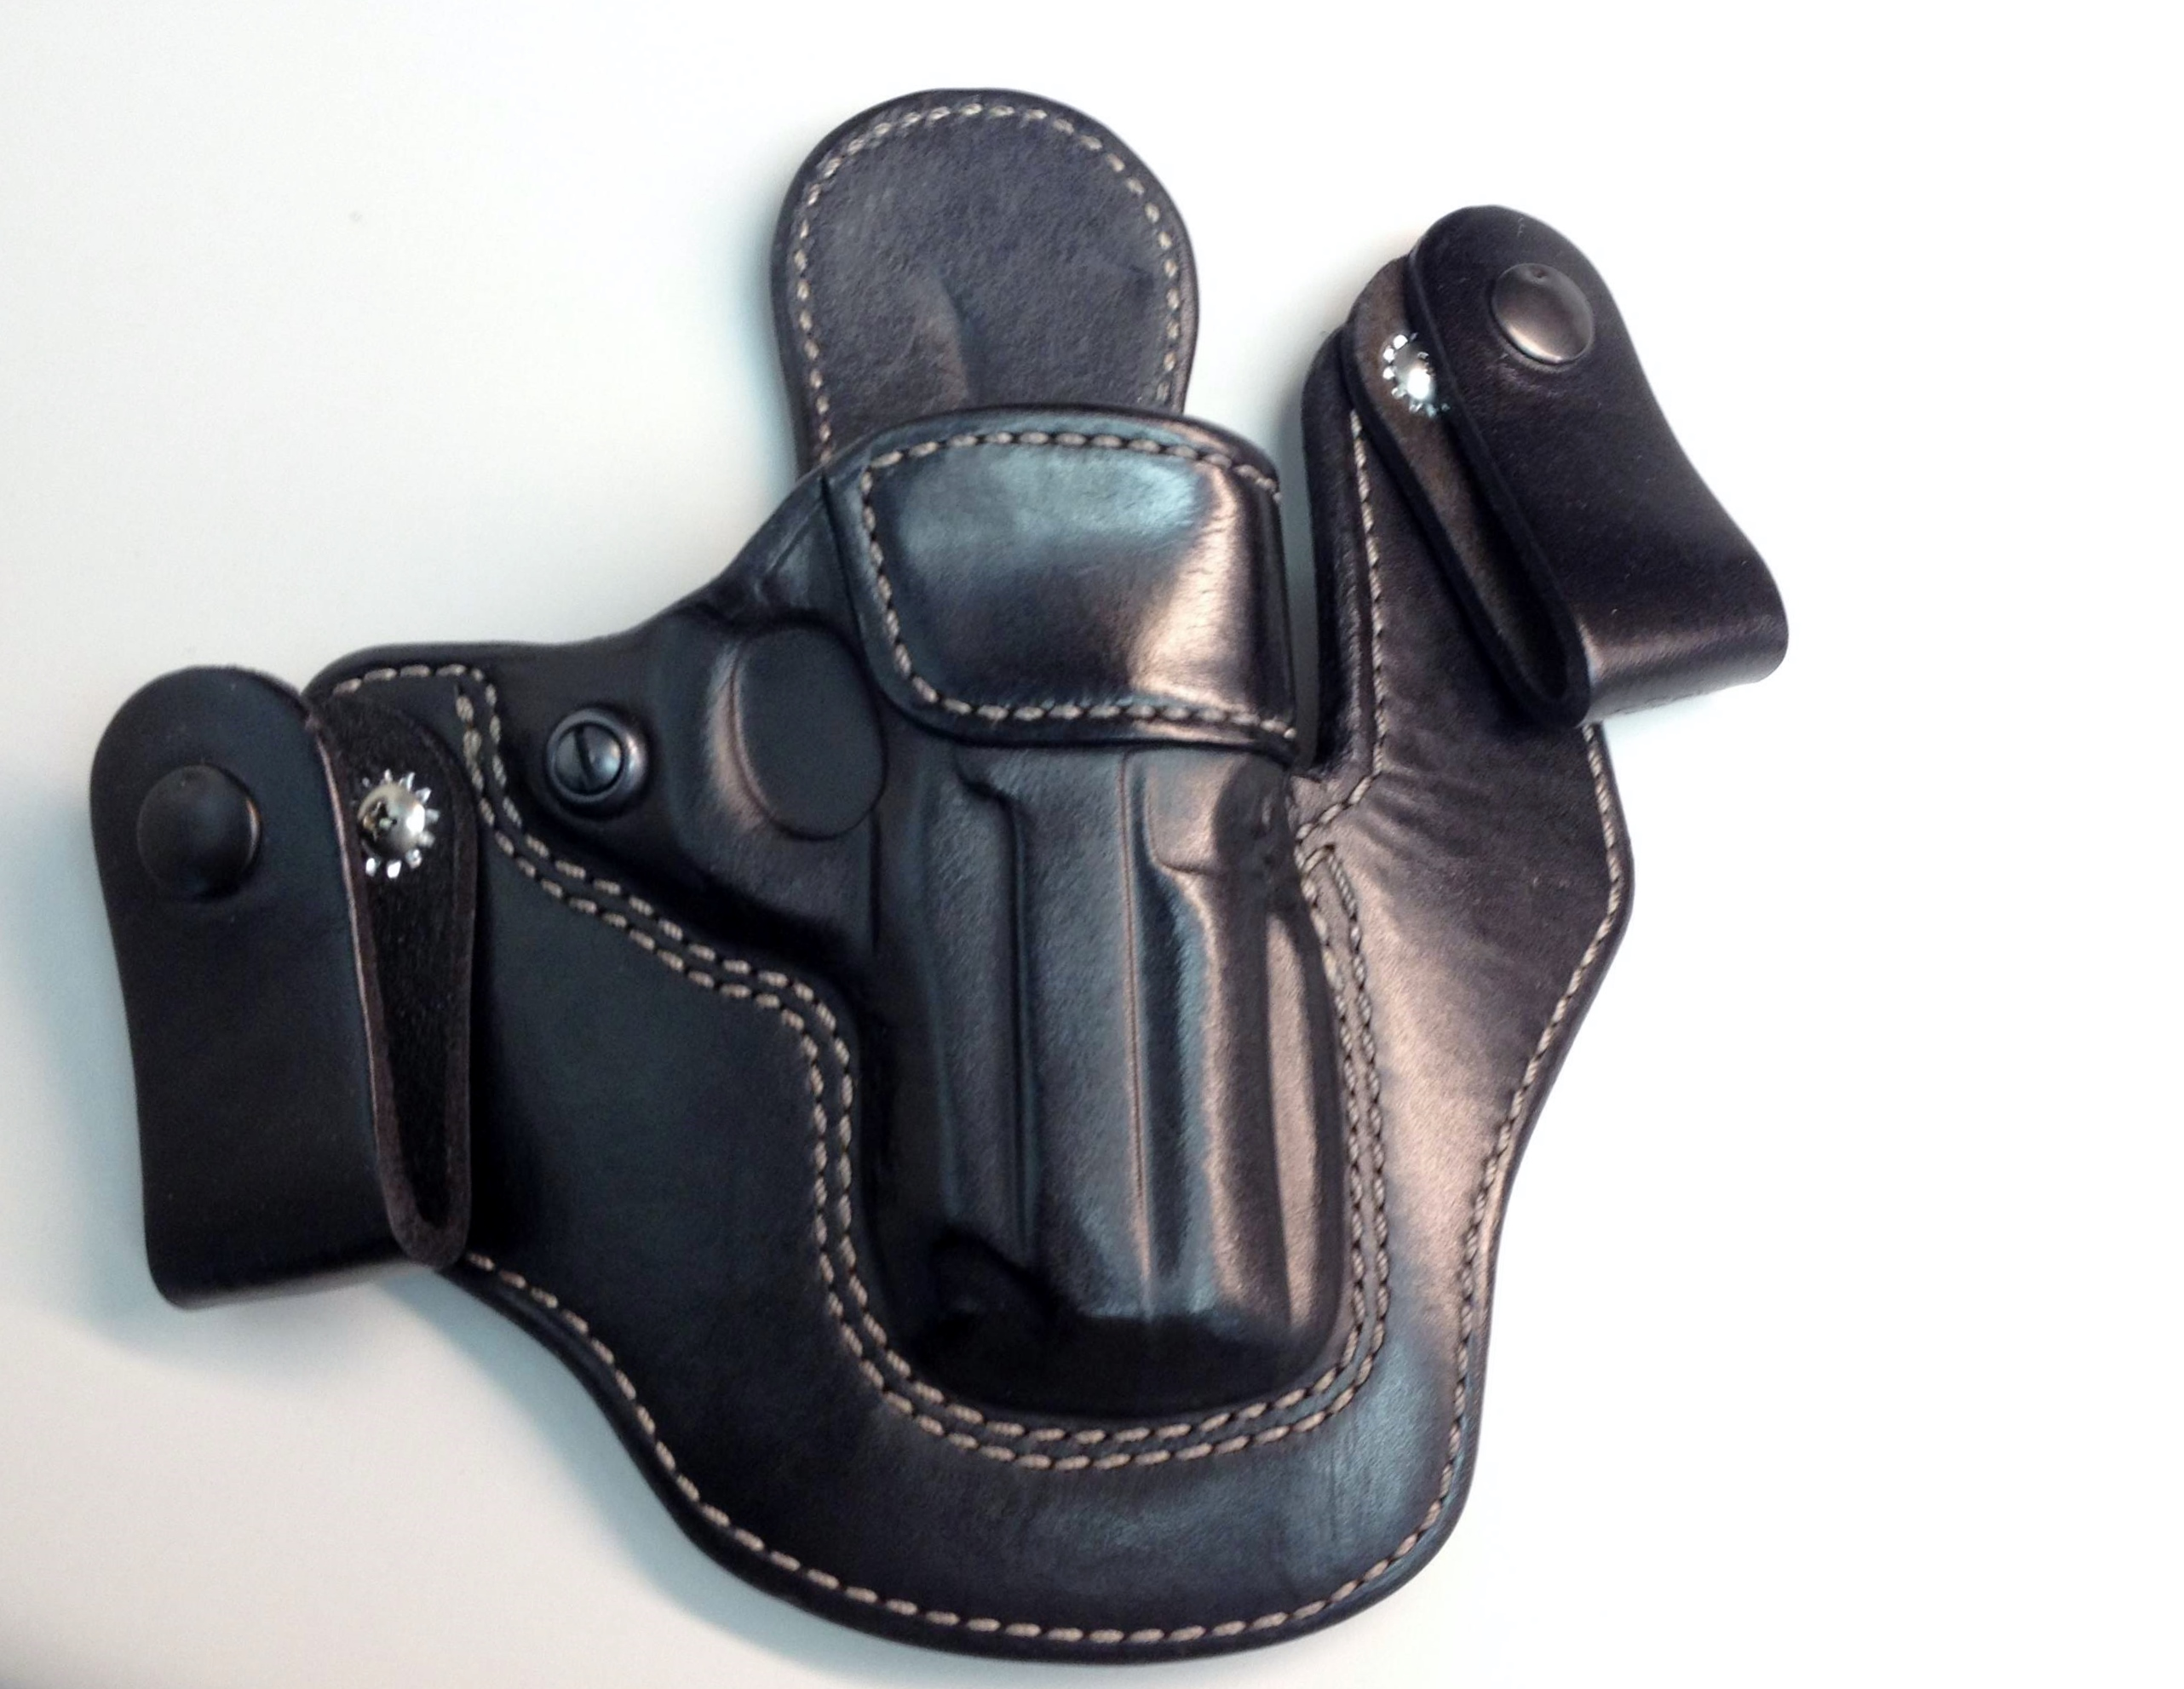 Holster for Sig Sauer Ultra Compact 1911-sigultracompactholster.jpg